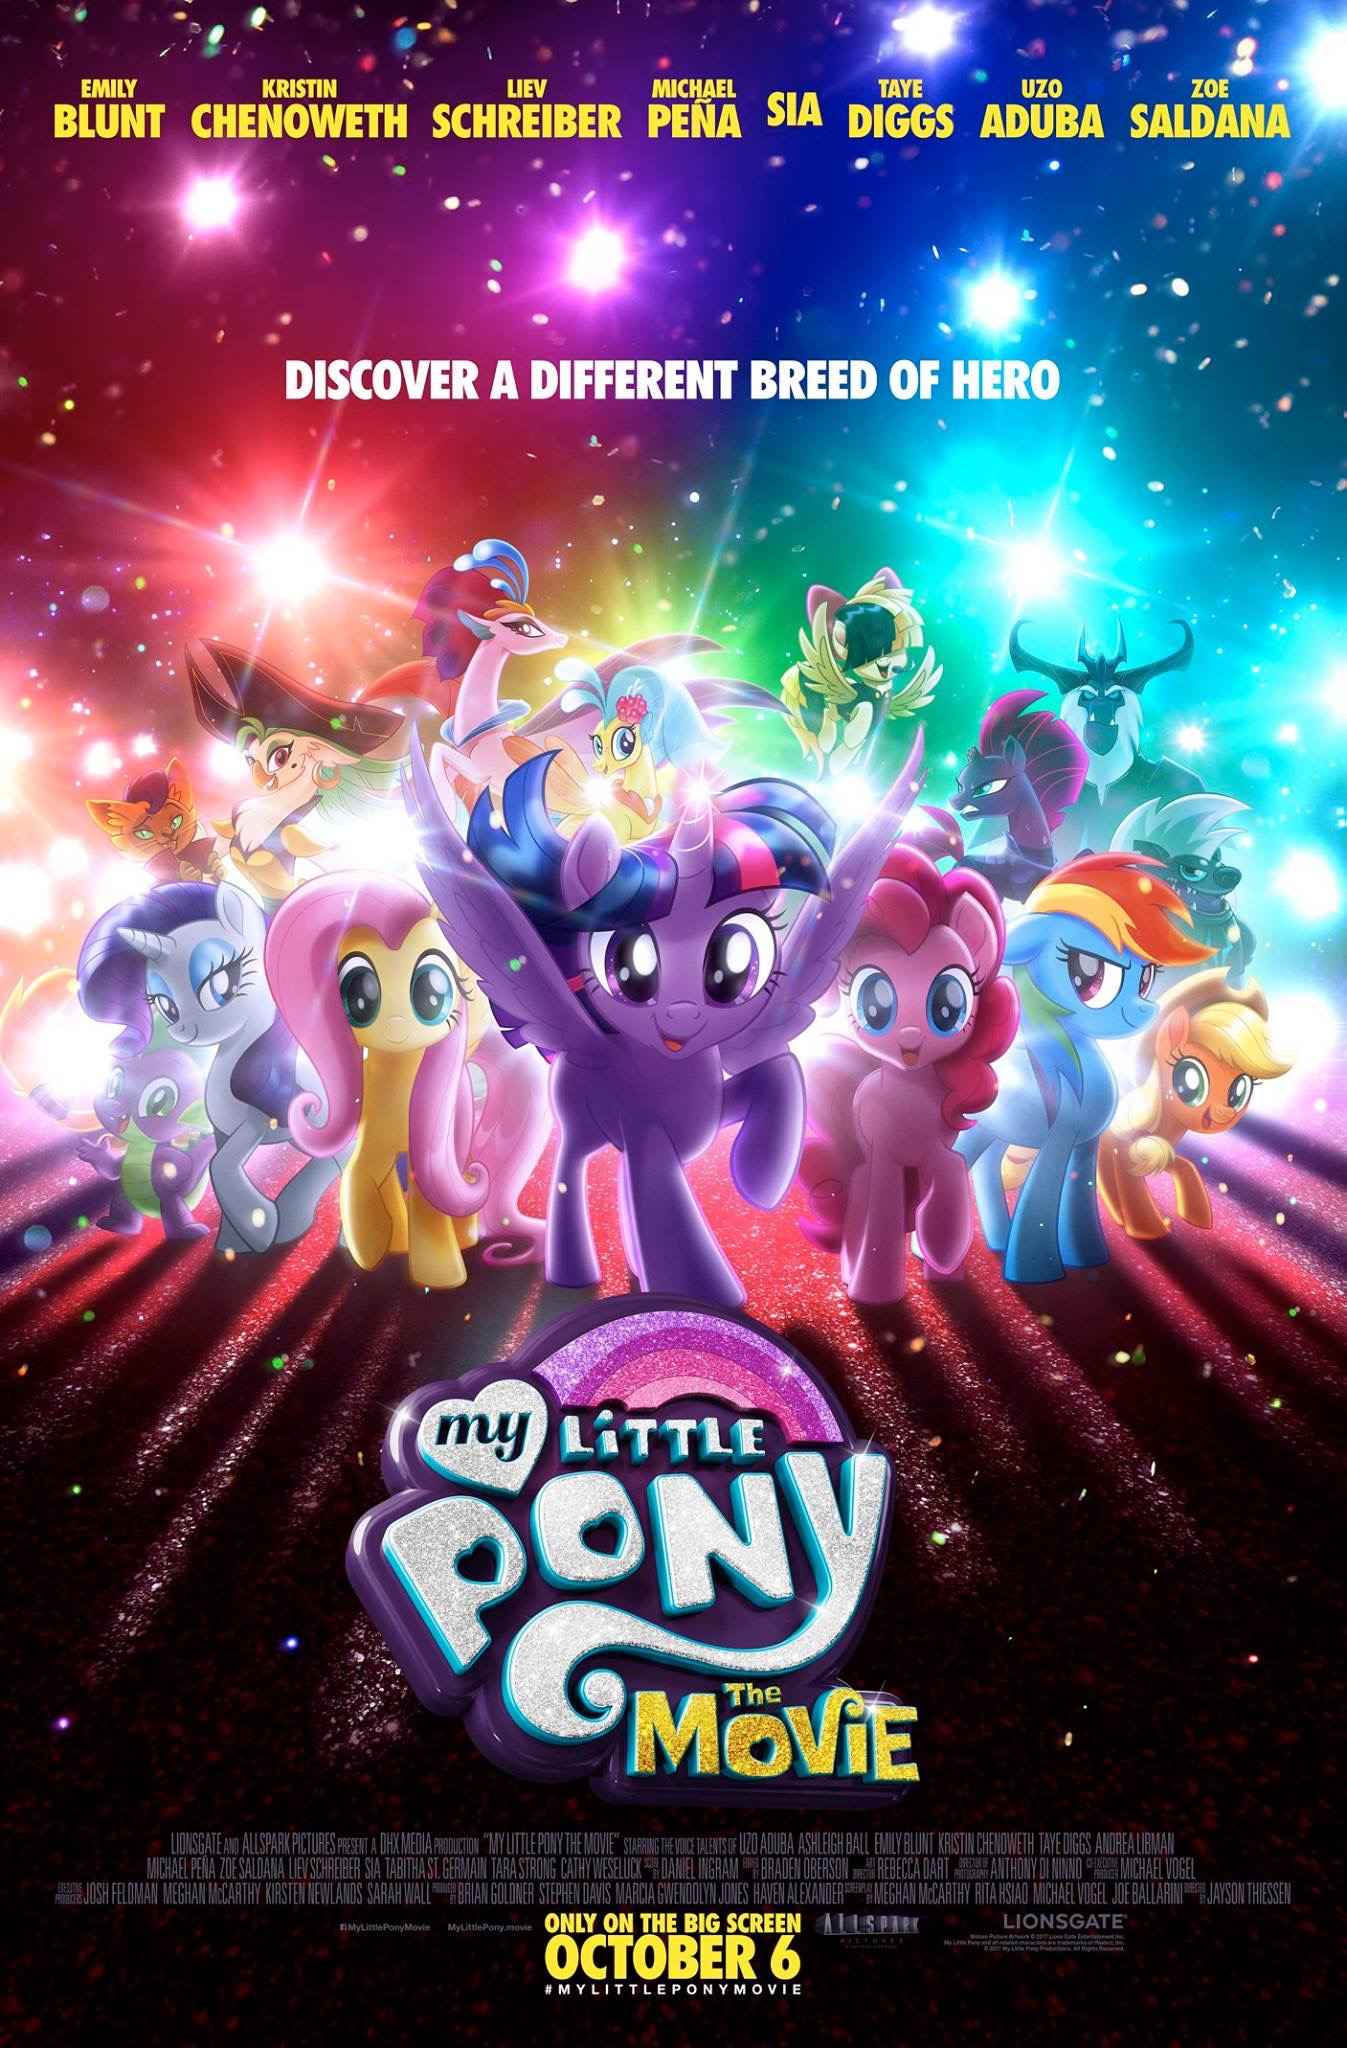 My Little Pony: The Movie (2017) Main Poster